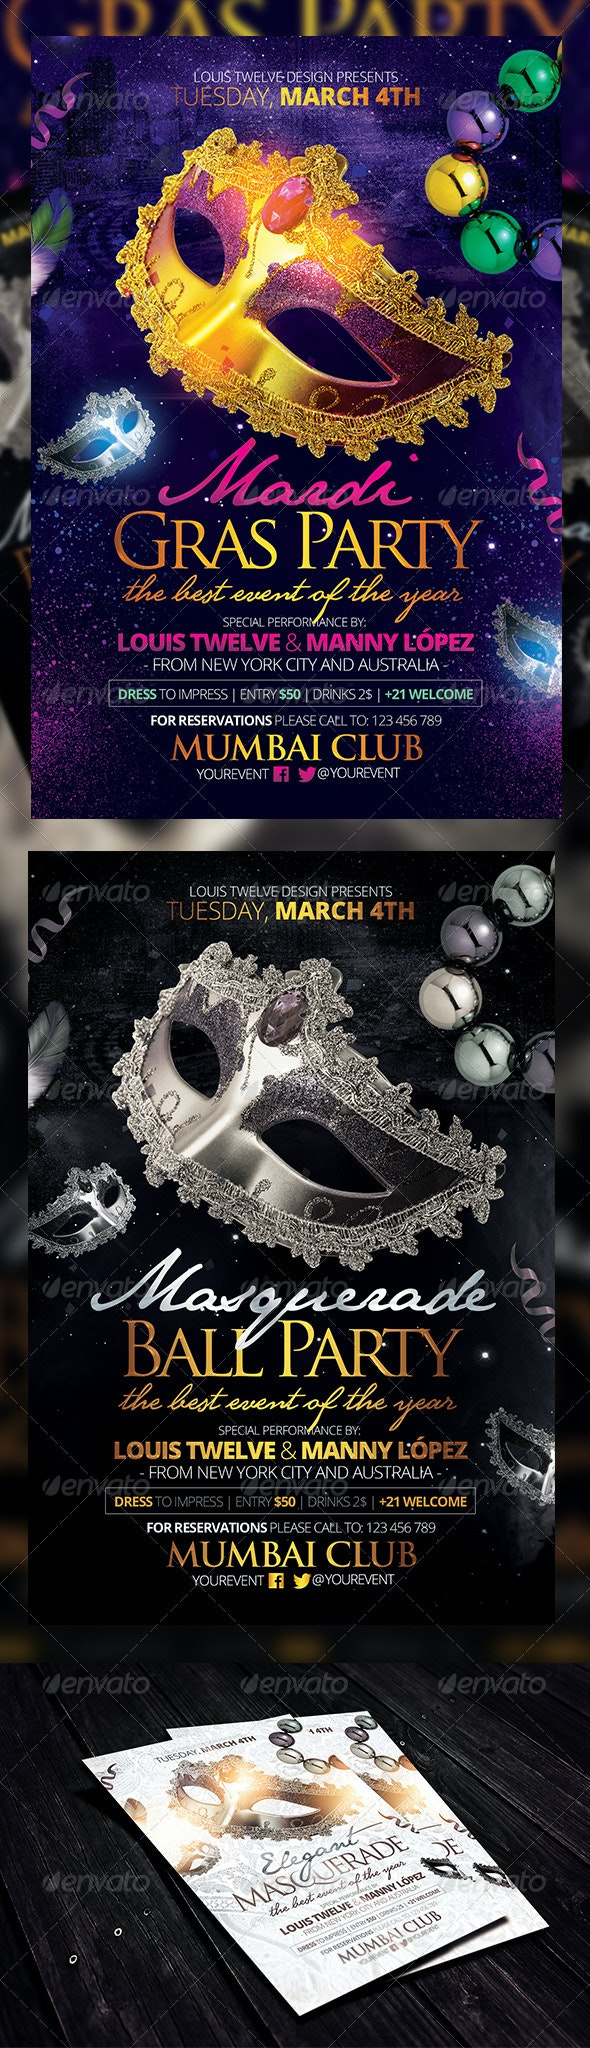 Masquerade Ball / Mardi Gras Party Flyers Template - Clubs & Parties Events